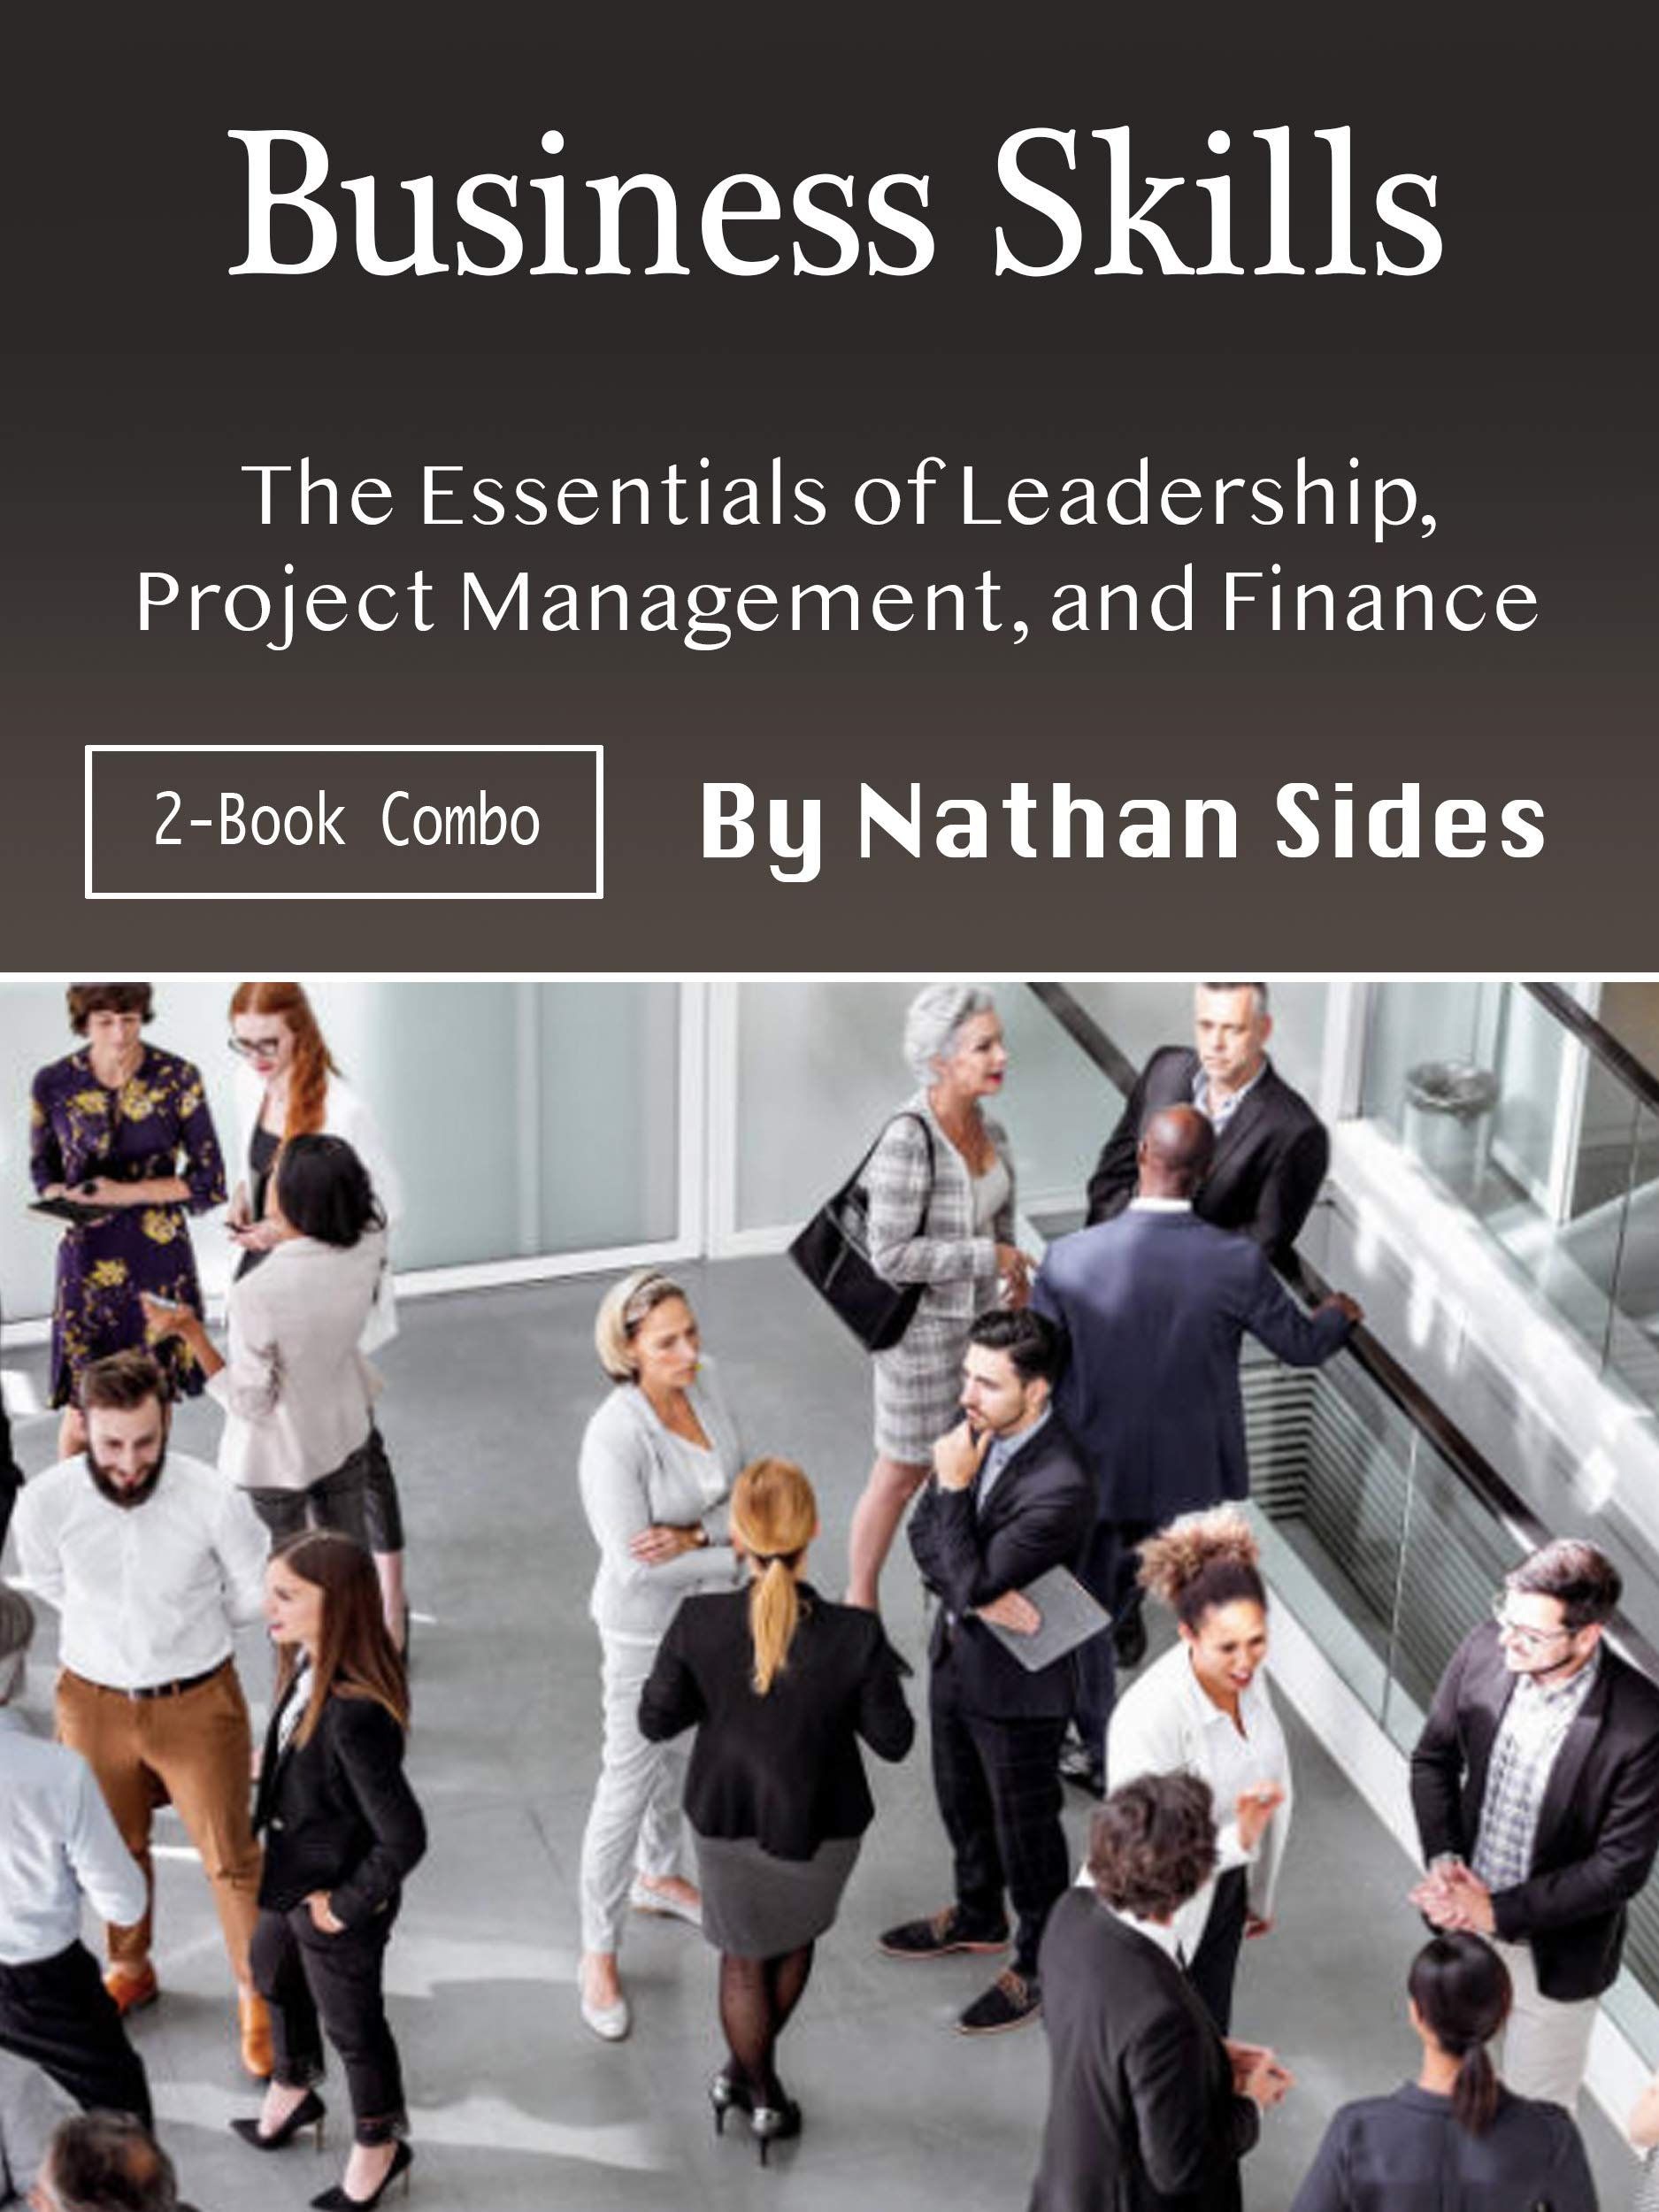 Business Skills: The Essentials of Leadership, Project Management, and Finance